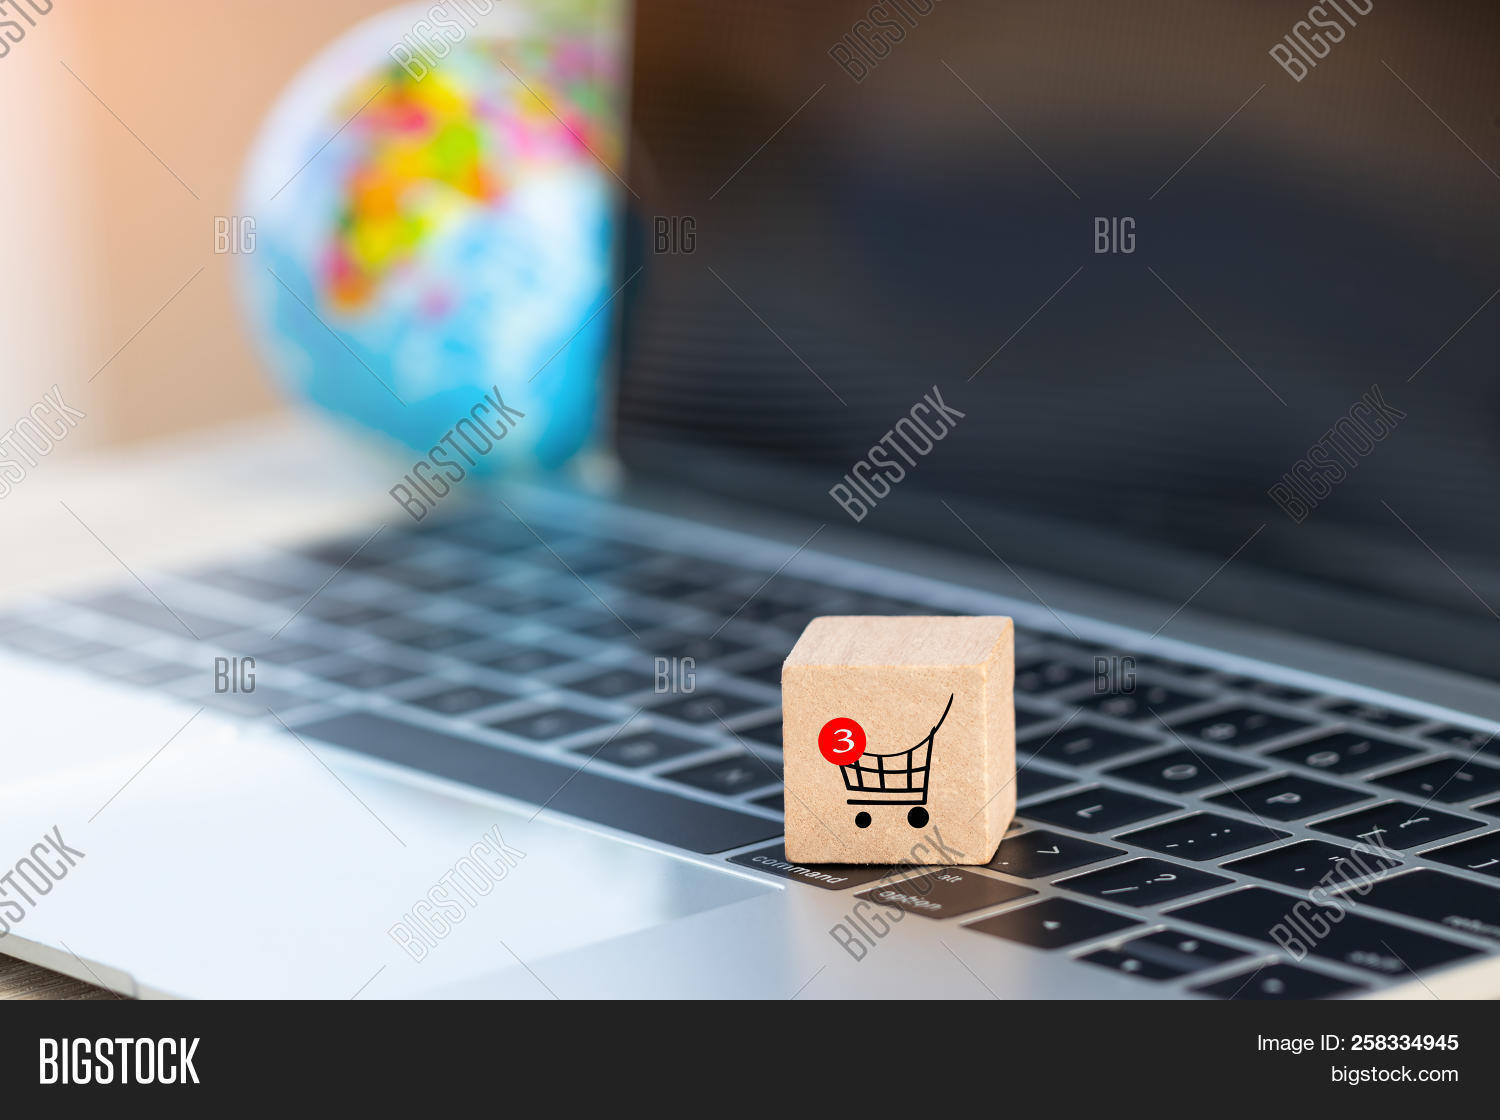 Wooden Cube Shopping Image Photo Free Trial Bigstock